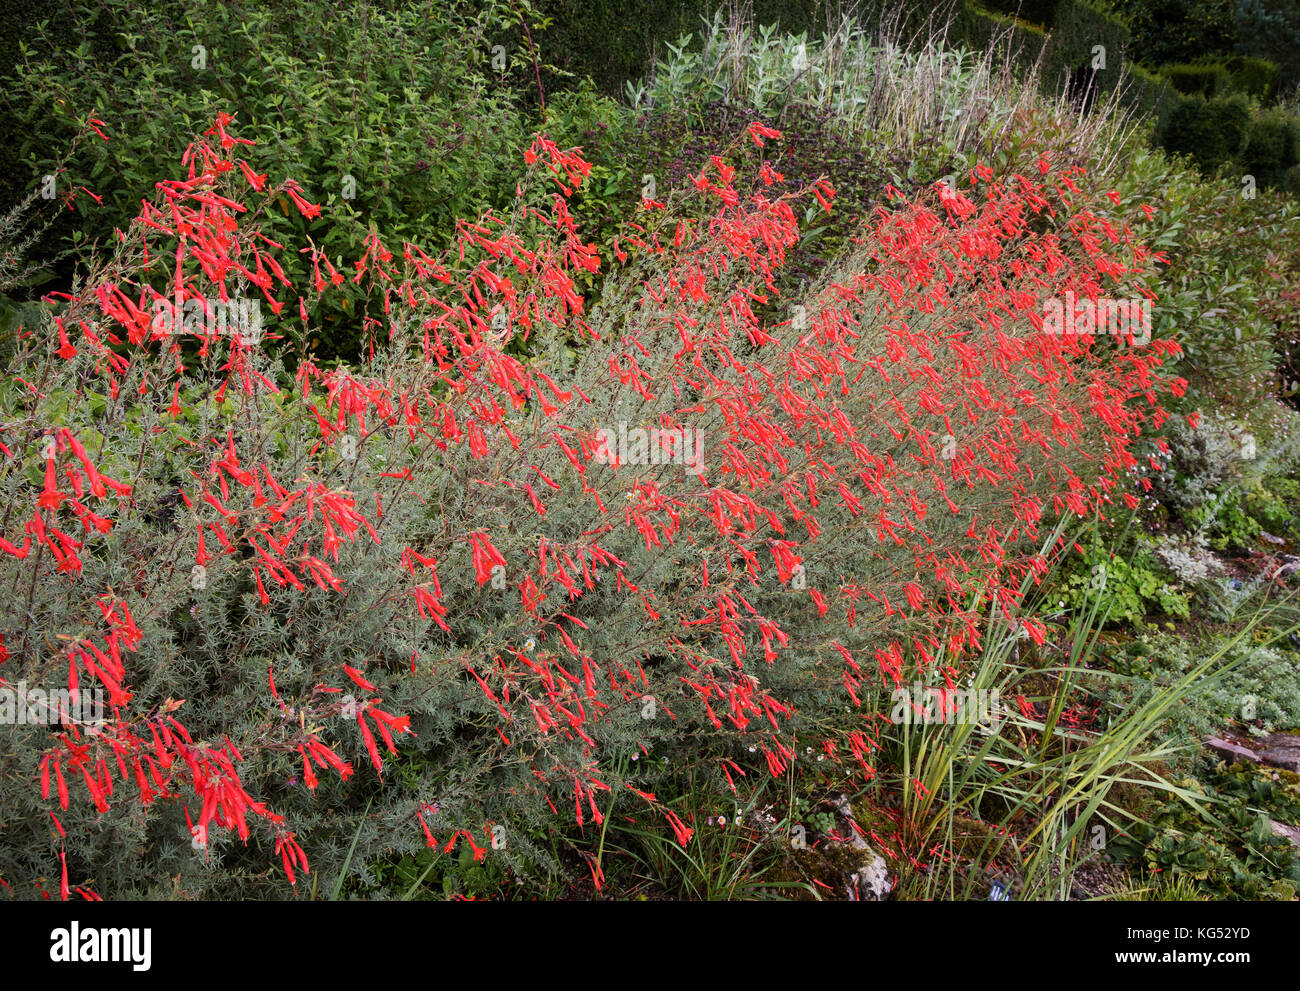 Pine leaf penstemon with coral red flowers and glaucous silver foliage growing in an herbaceous border in an English - Stock Image